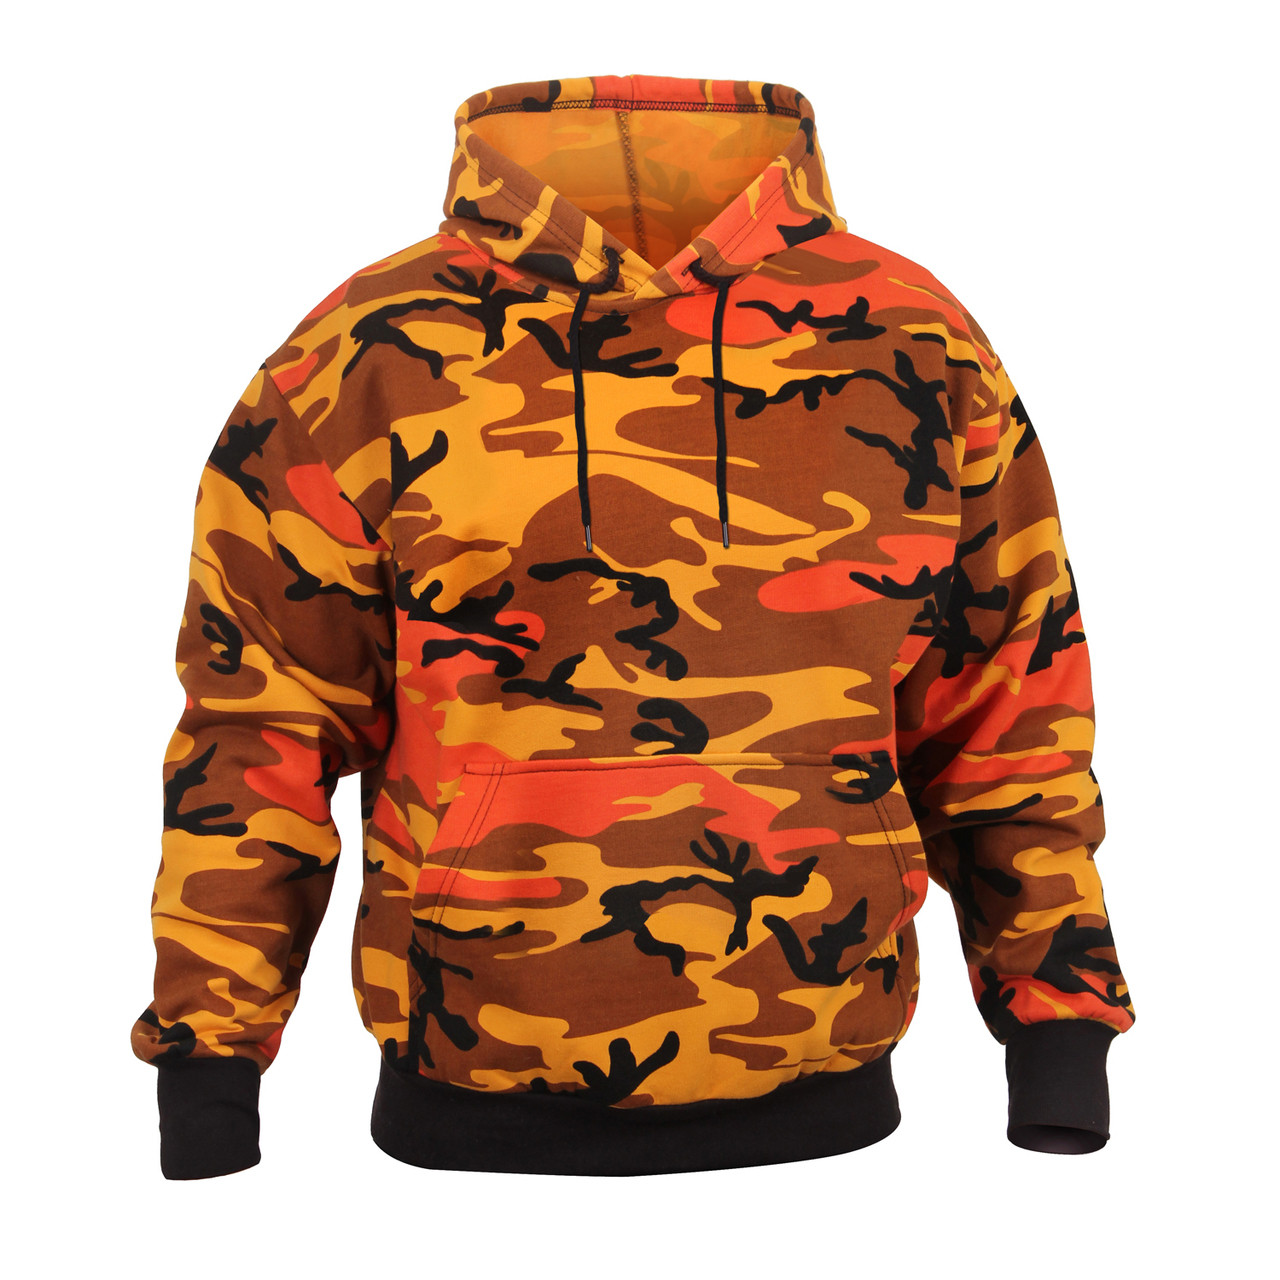 Shop Savage Camo Pullover Hooded Sweatshirts - Fatigues Army Navy Gear aaf470ad1f